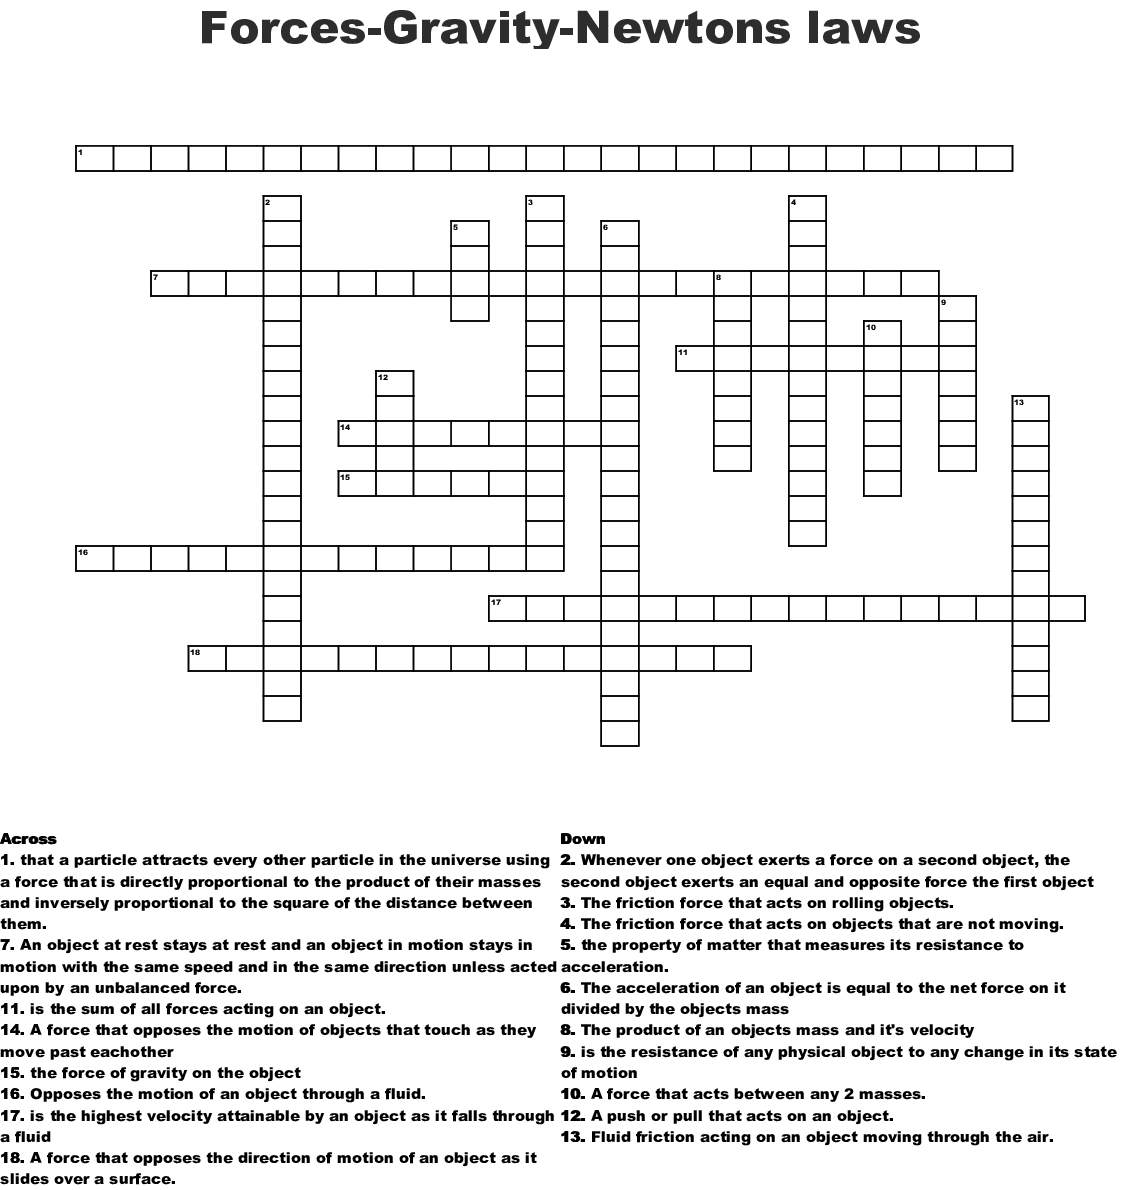 Forces Gravity Newtons Laws Crossword